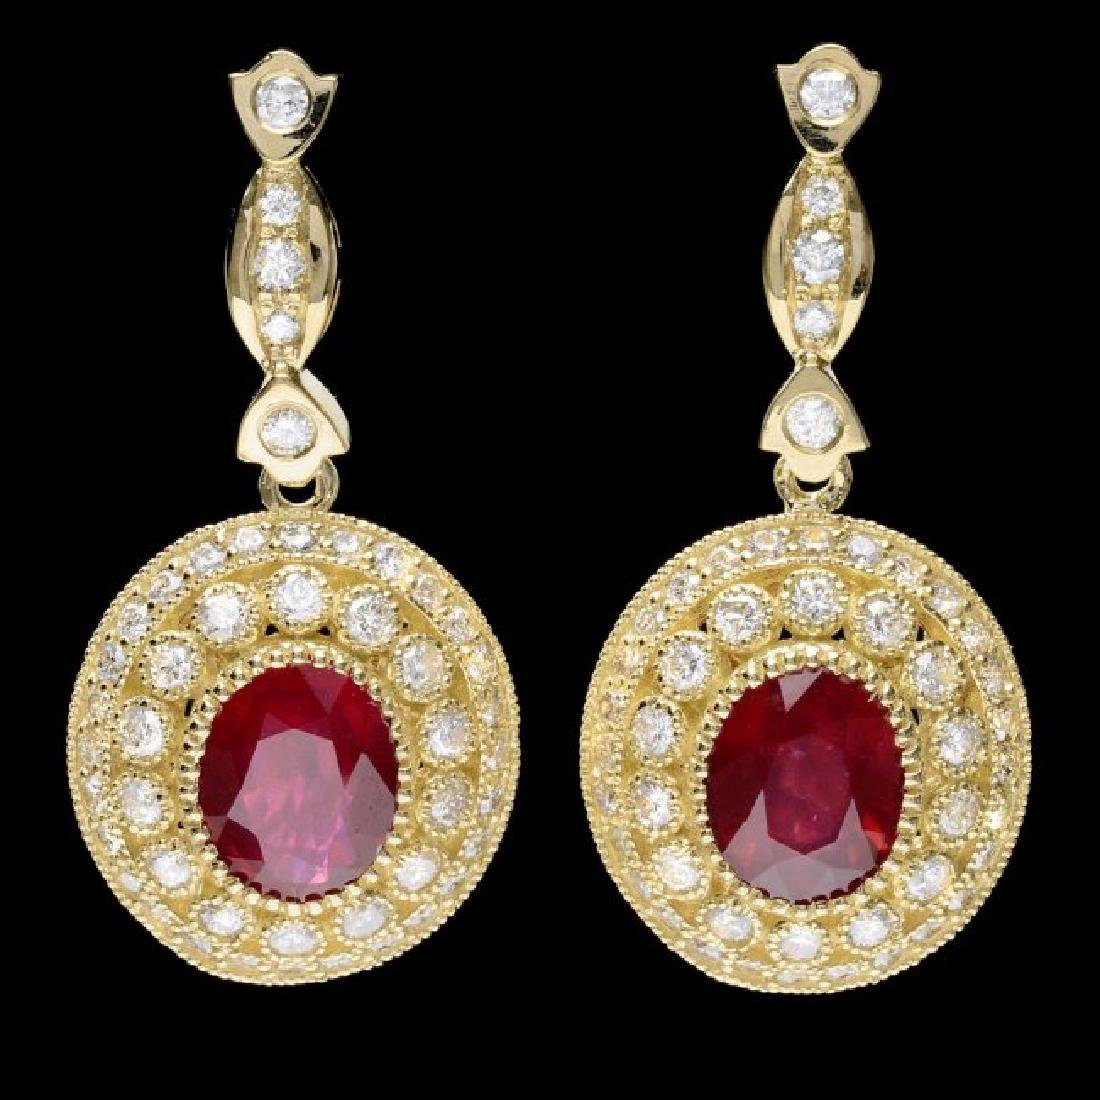 14k Gold 7.50ct Ruby 2.60ct Diamond Earrings